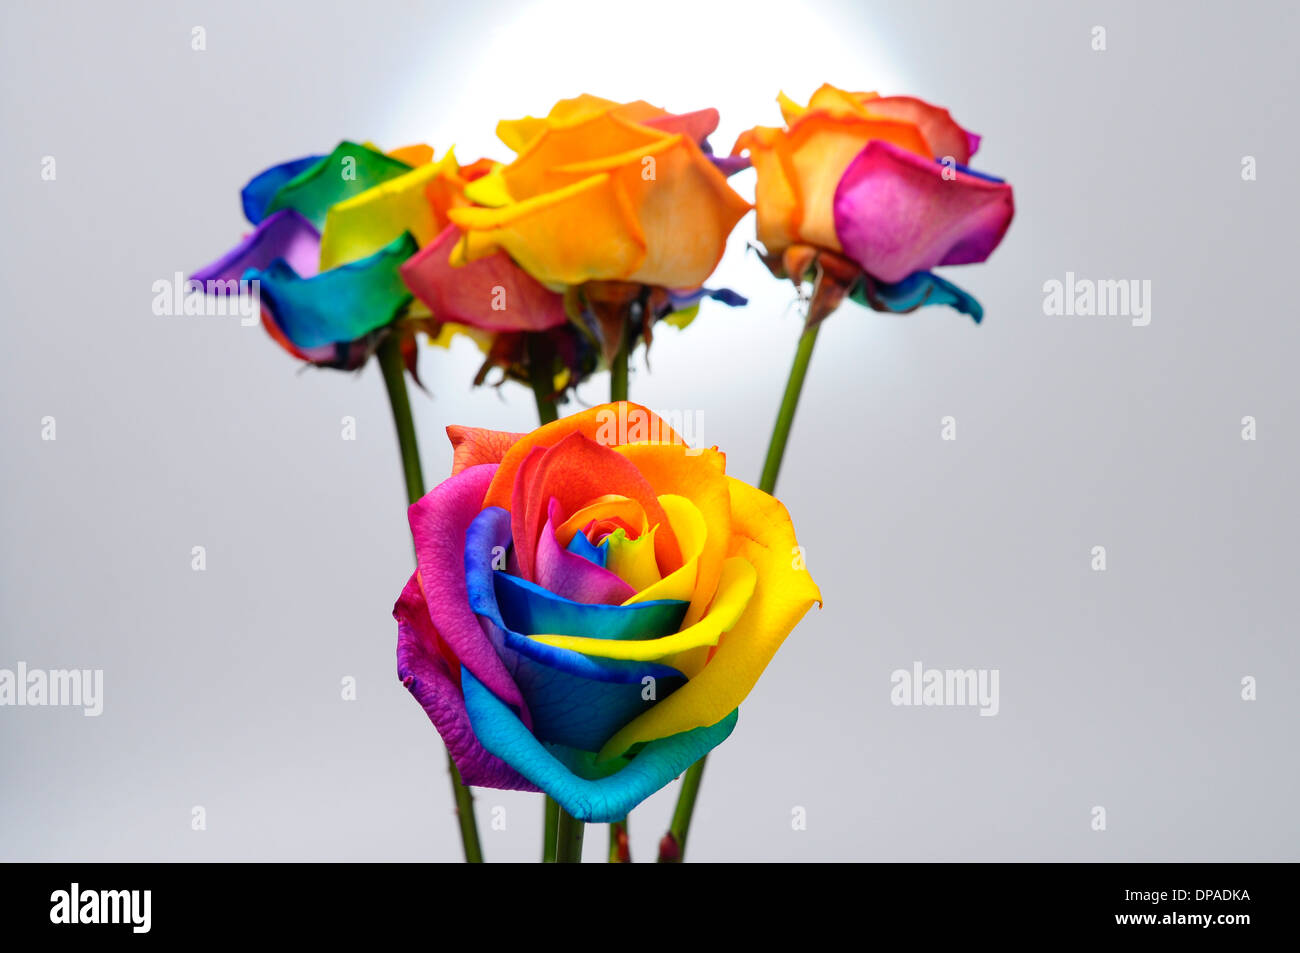 Bouquet of happy flower : rainbow rose with colored petals Stock ...